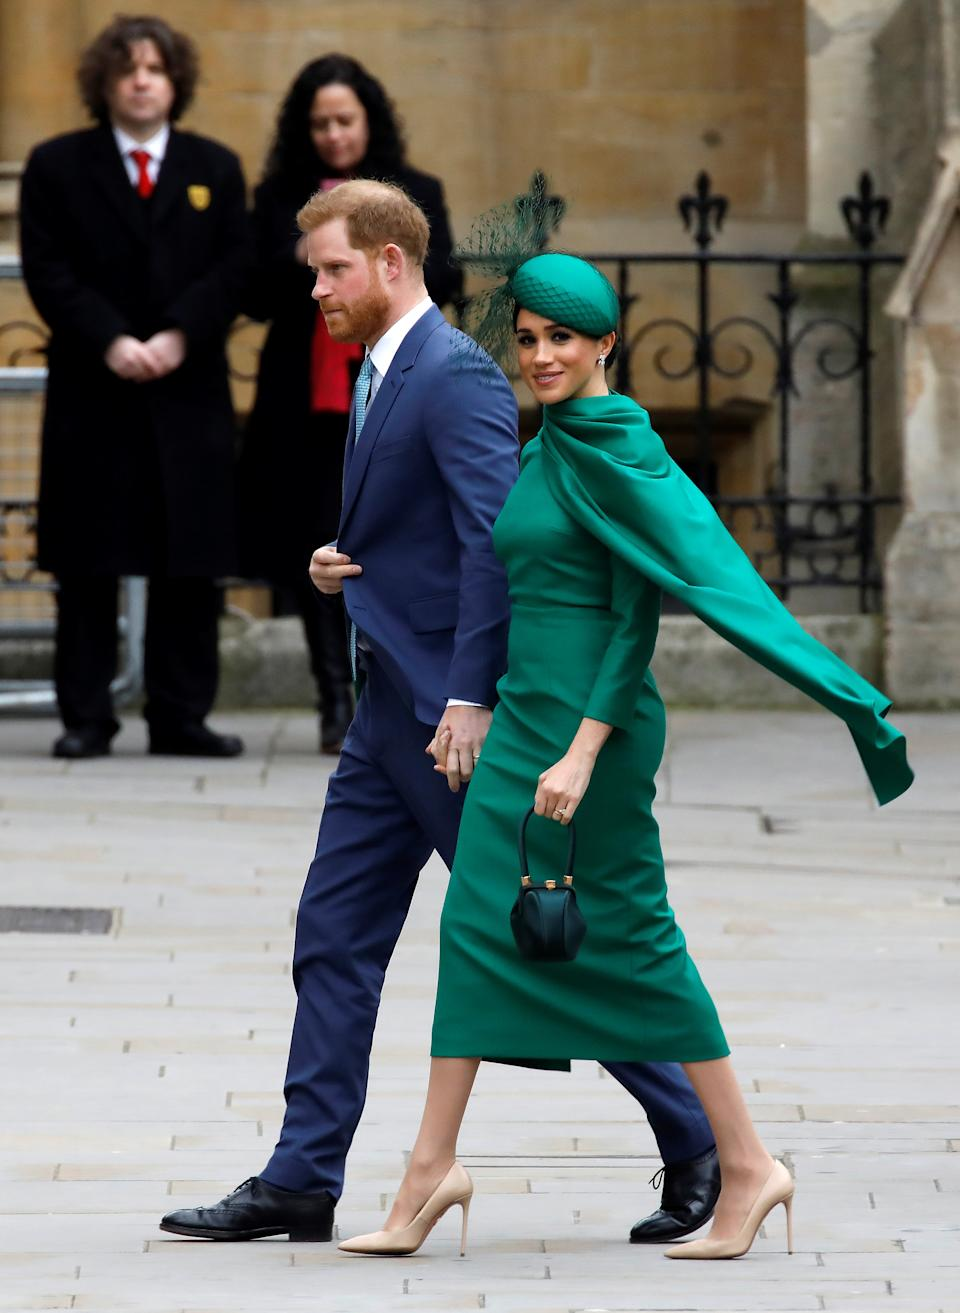 Meghan wore a caped emerald gown by British designer Emilia Wickstead. (Getty Images)